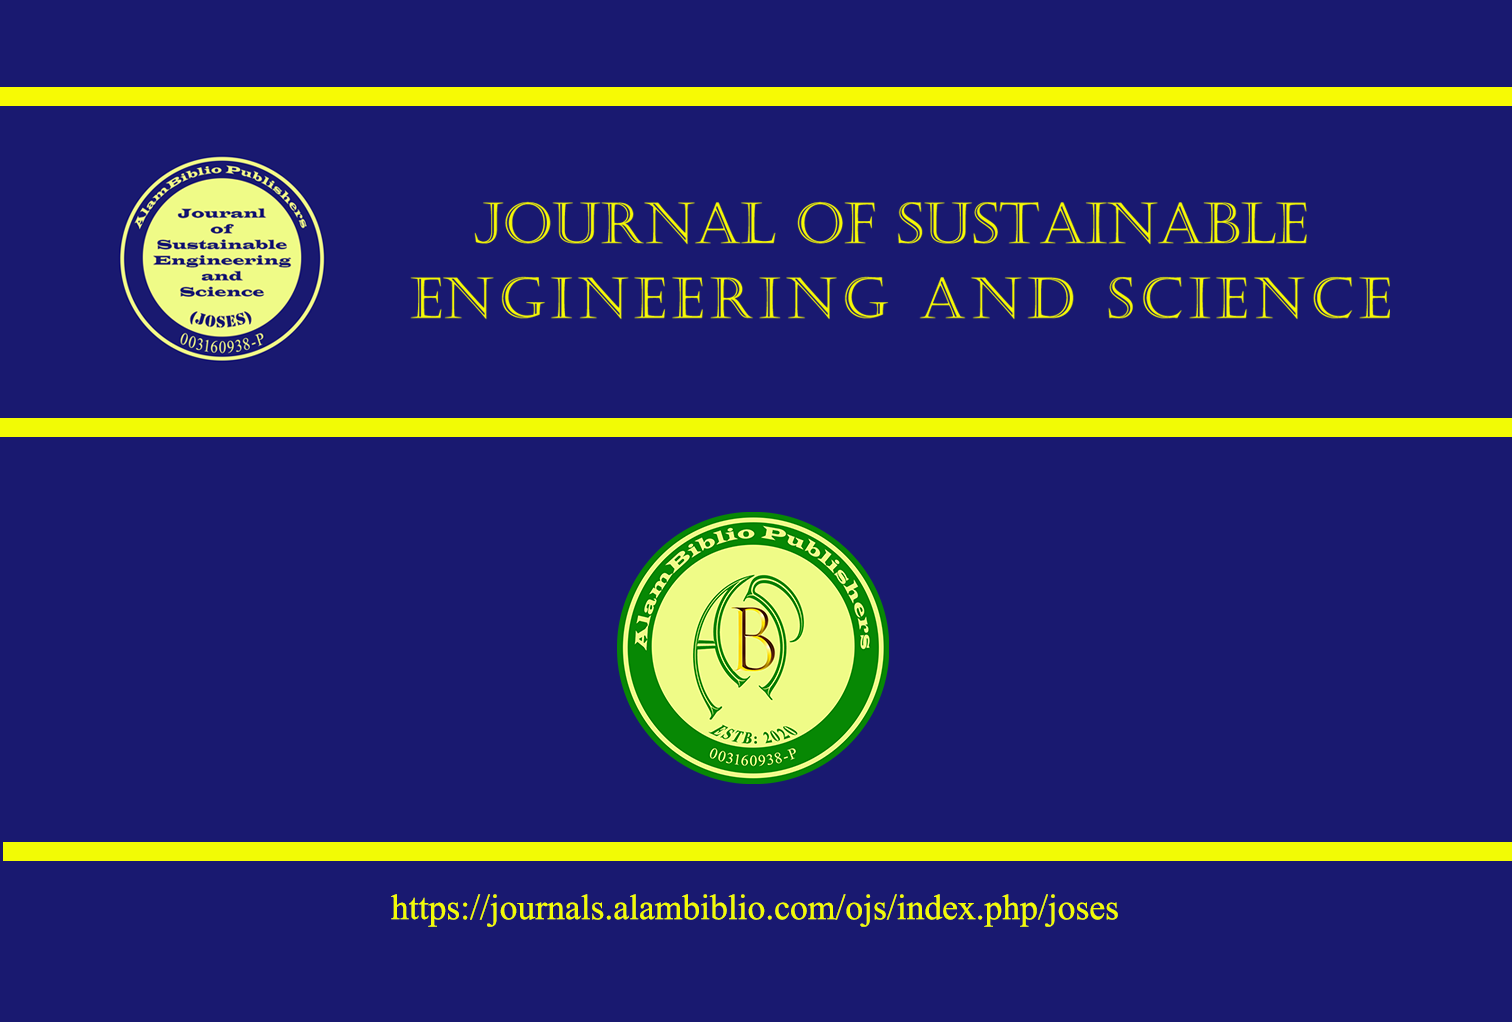 Journal of Sustainable Engineering and Sciences